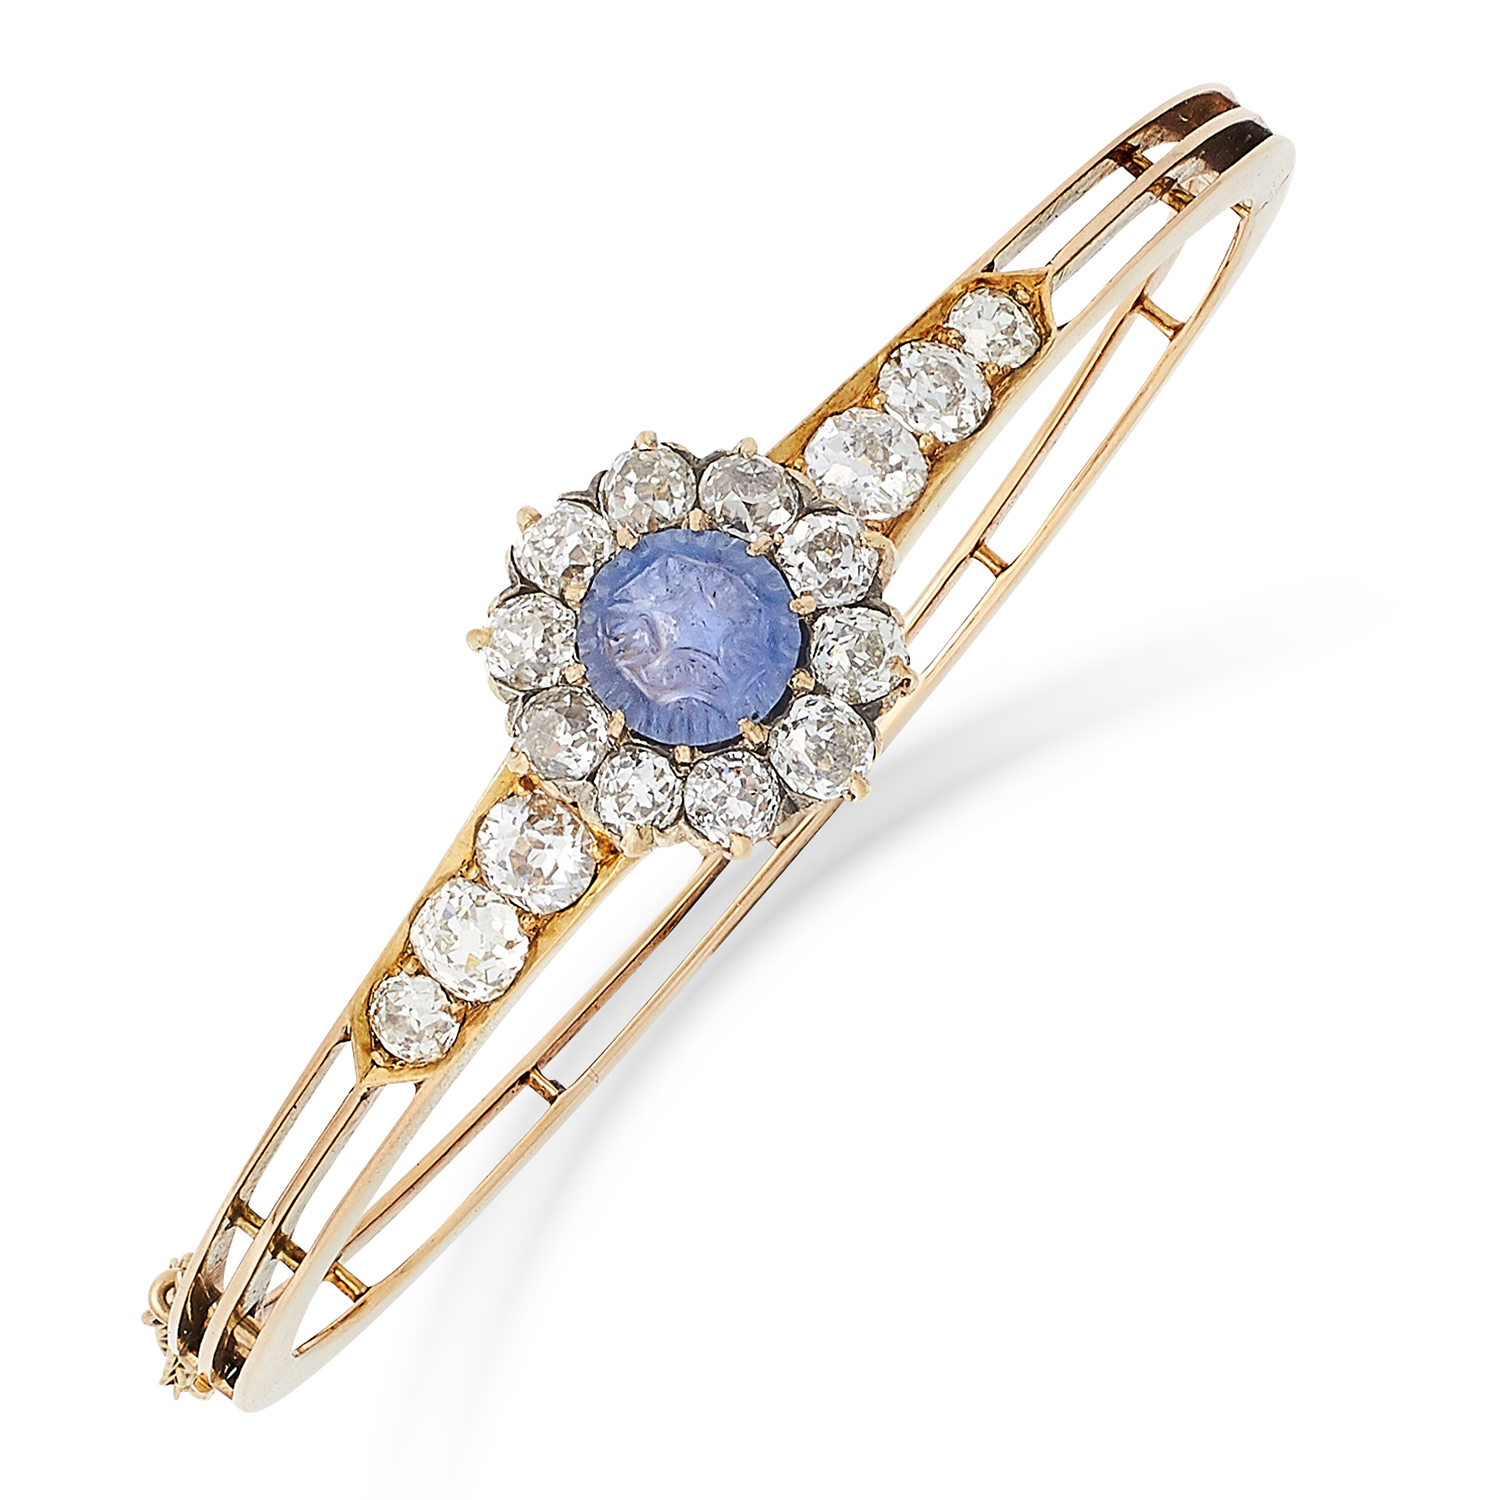 ANTIQUE SAPPHIRE AND DIAMOND BANGLE set with a Mughal carved sapphire and old cut diamonds totalling